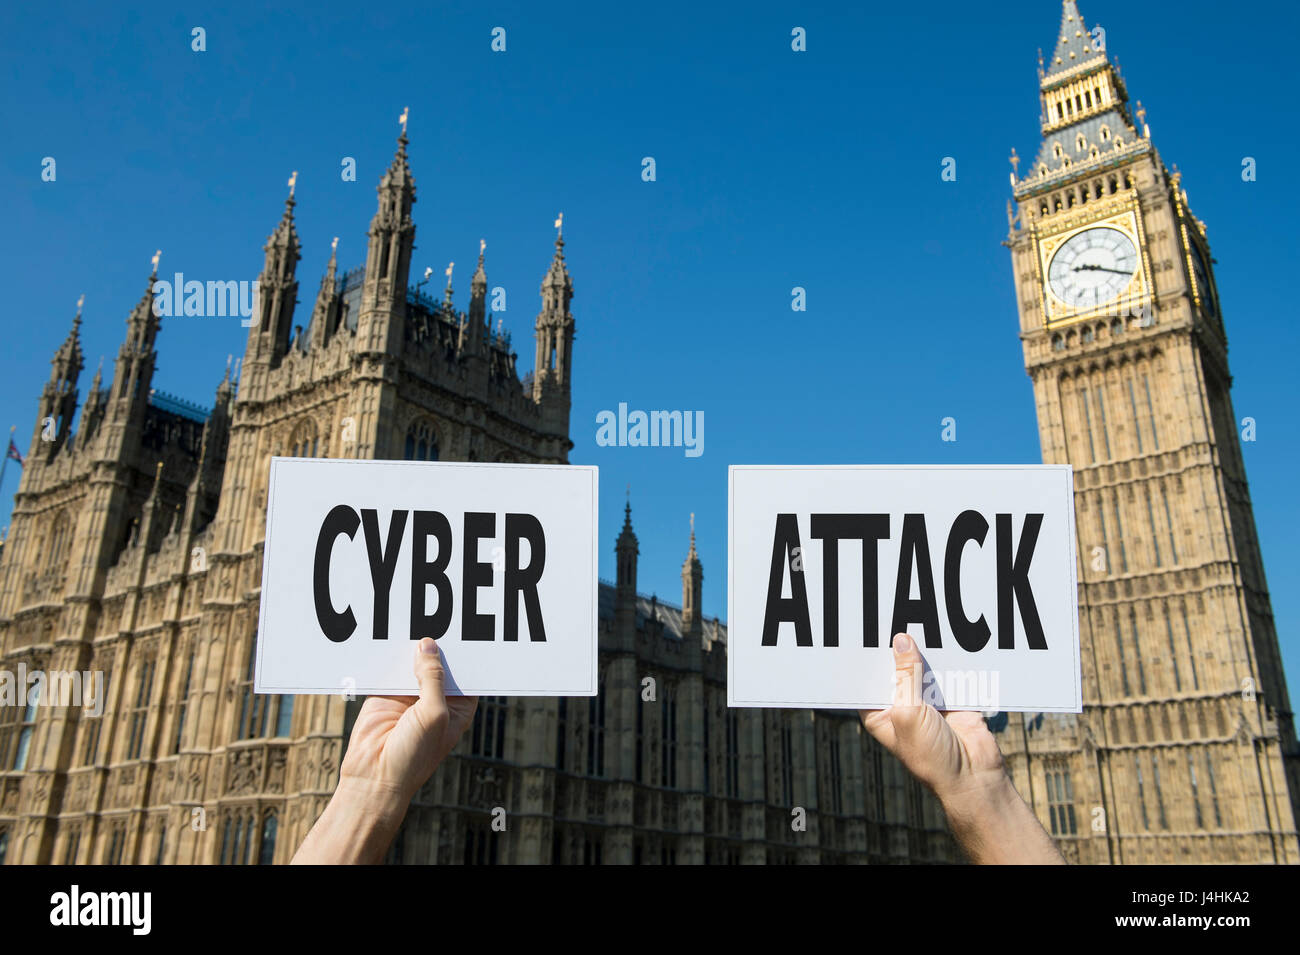 Hands holding signs protesting a computer cyber attack outside the Houses of Parliament at Westminster Palace in - Stock Image